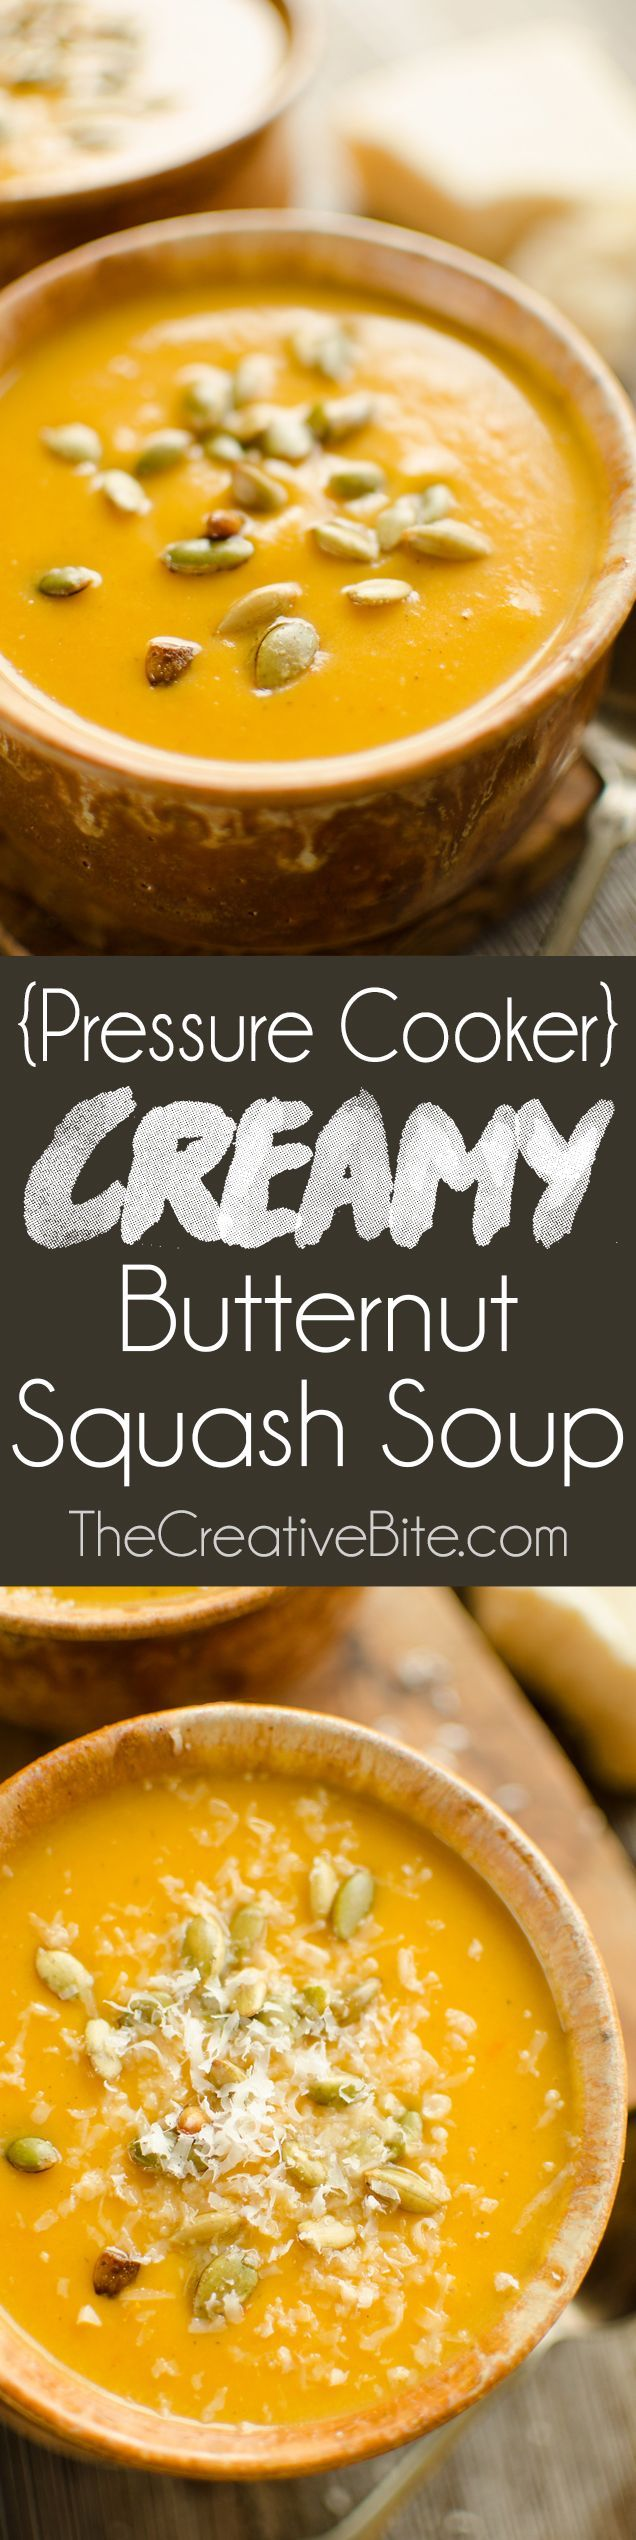 Pressure Cooker Creamy Butternut Squash Soup is a healthy and hearty recipe made in your Instant Pot for a quick and easy 20 minute dinner idea. #InstantPot #Soup